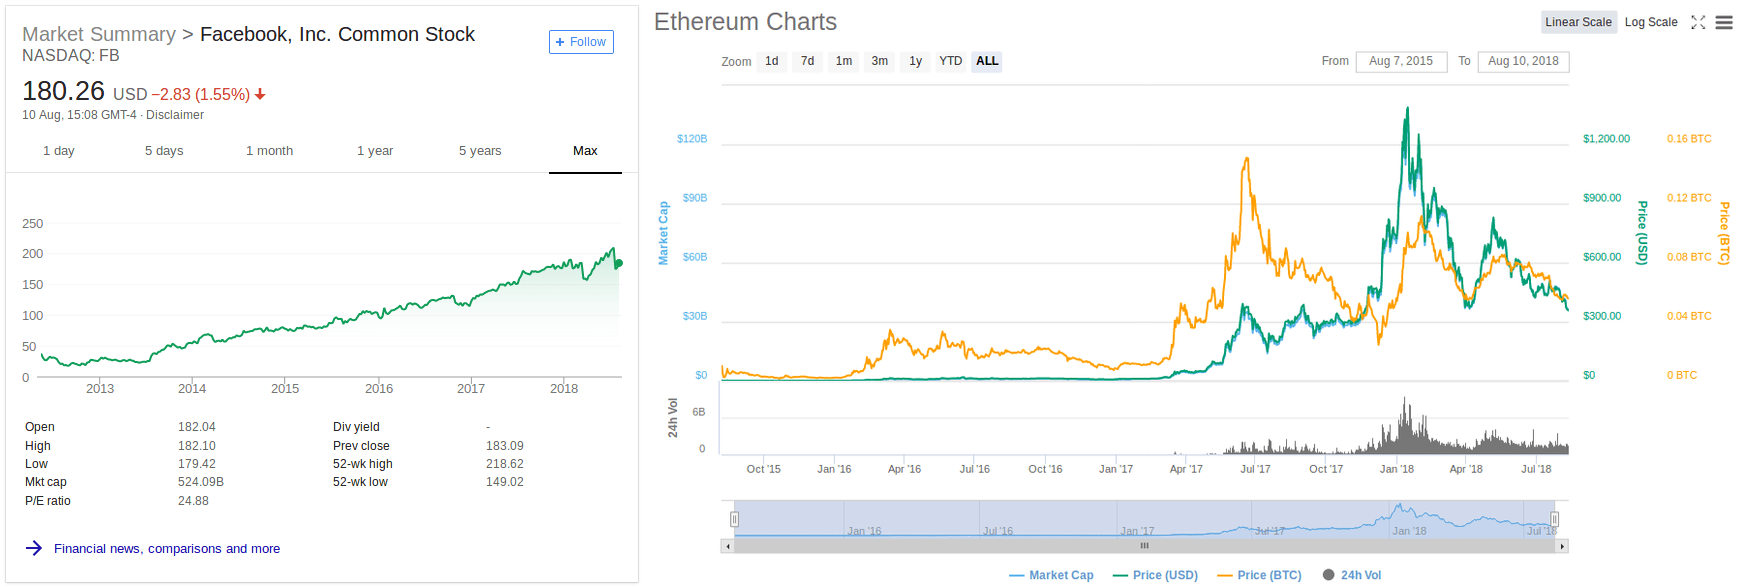 Ethereum price vs Facebook stock price